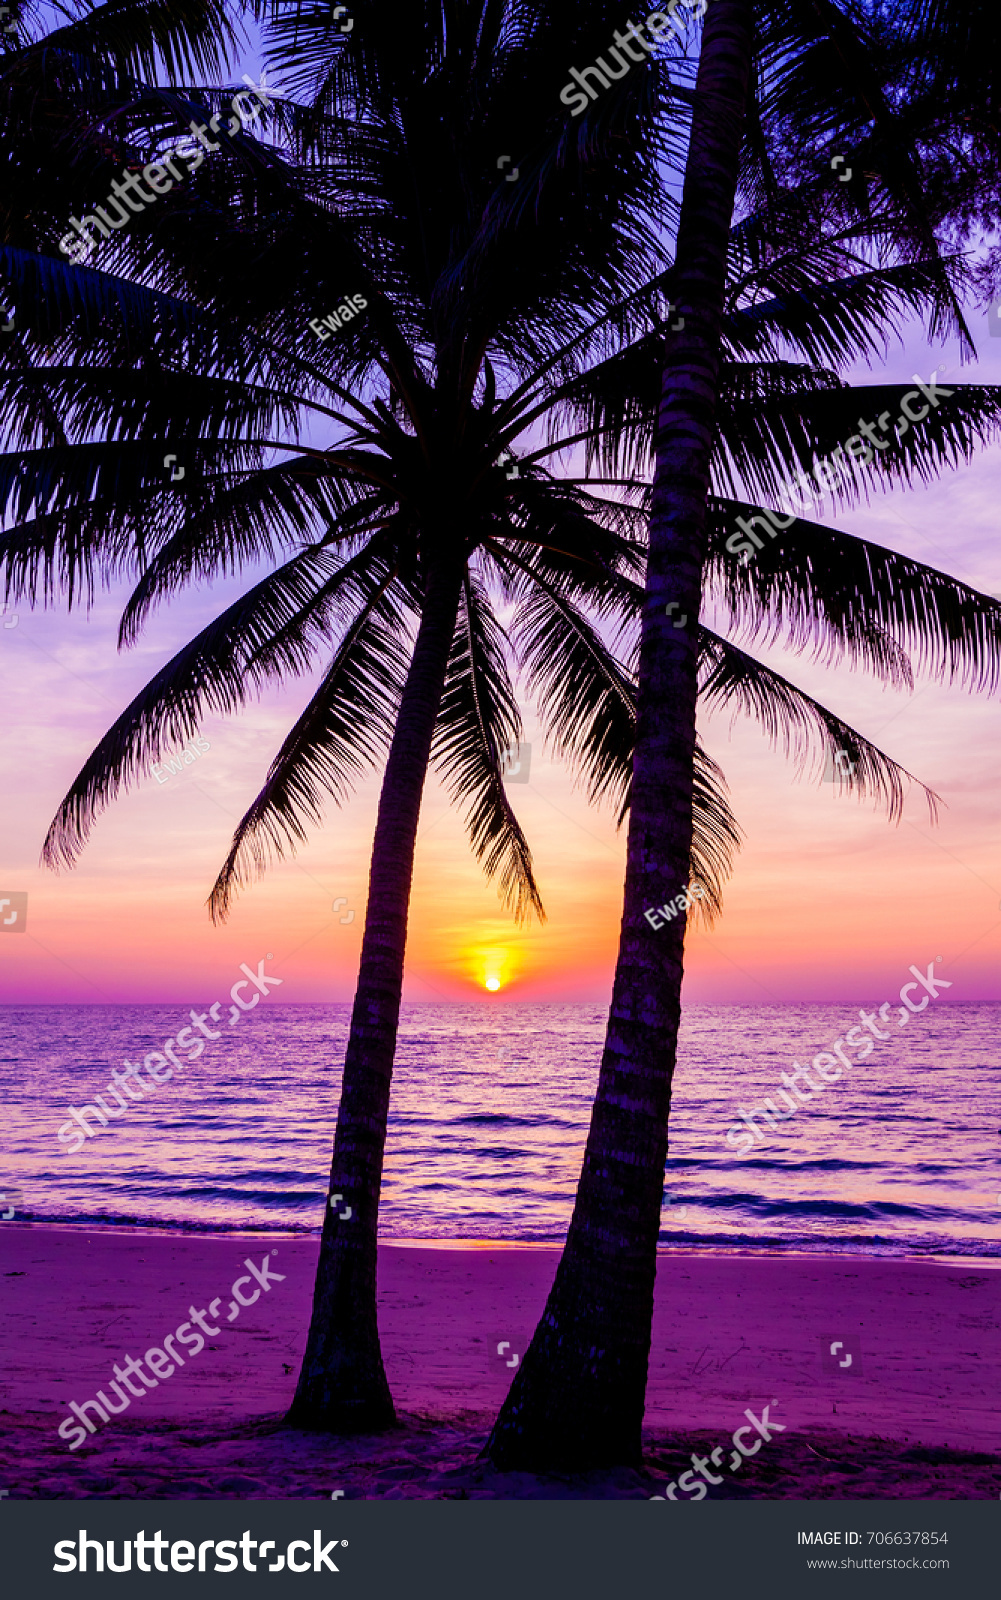 Palm Trees Silhouette At Sunset And Beach Beautiful Above The Sea